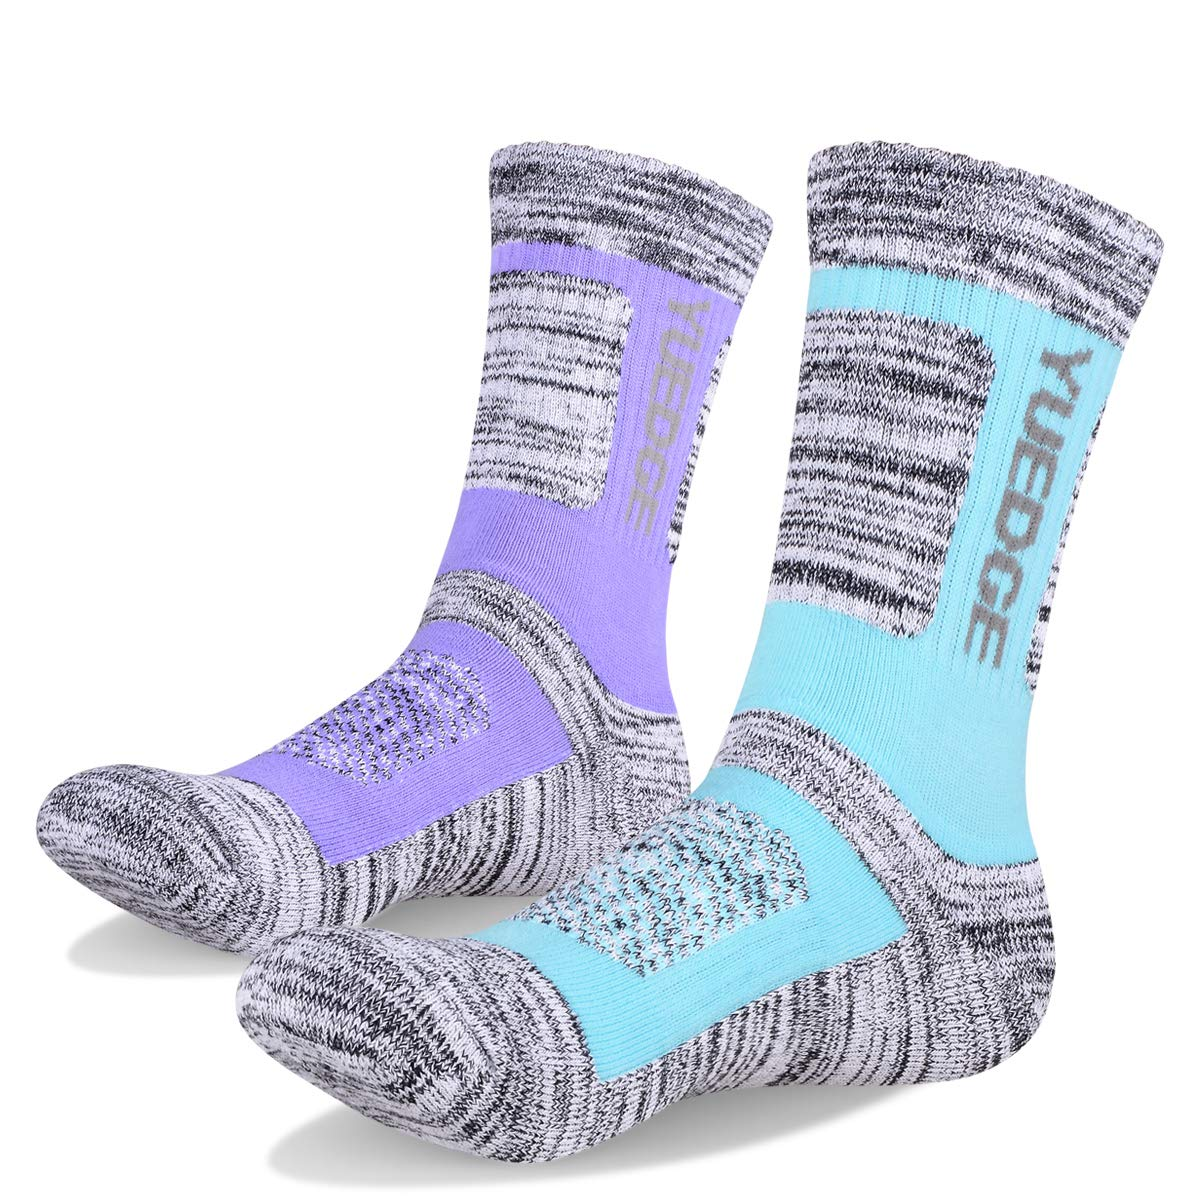 YUEDGE Women's 2 Pairs Wicking Breathable Cushion Casual Crew Socks Outdoor Multi Performance Athletic Hiking Socks (Purple/Light Blue)